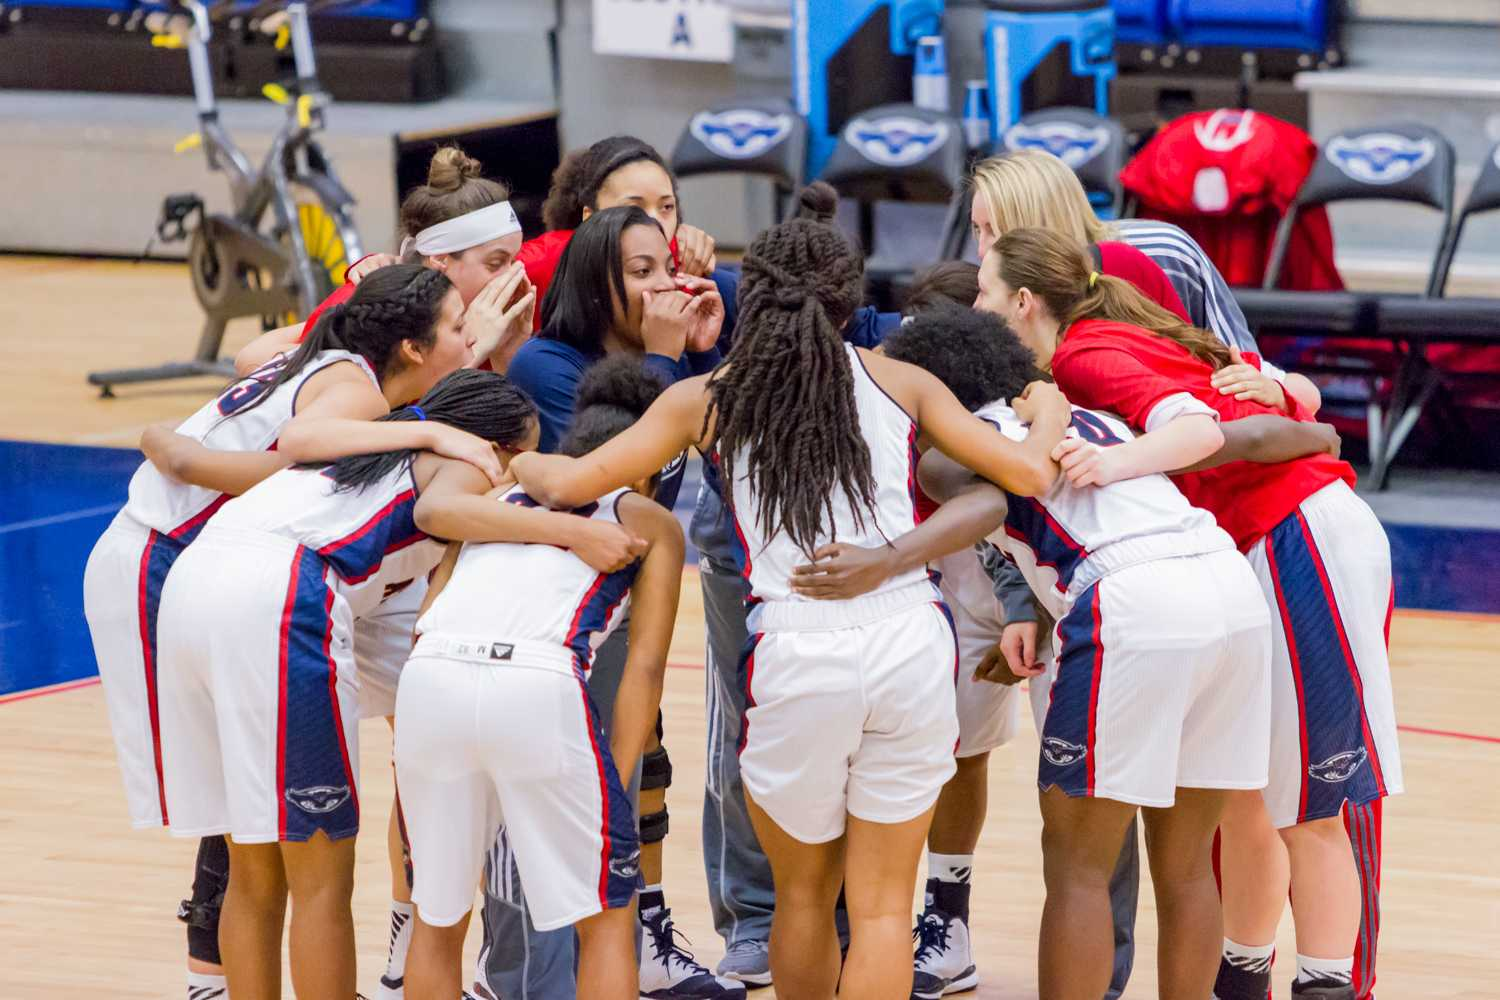 Redshirt freshman Ro Hayes (3) motivates her teammates before the start of the game.